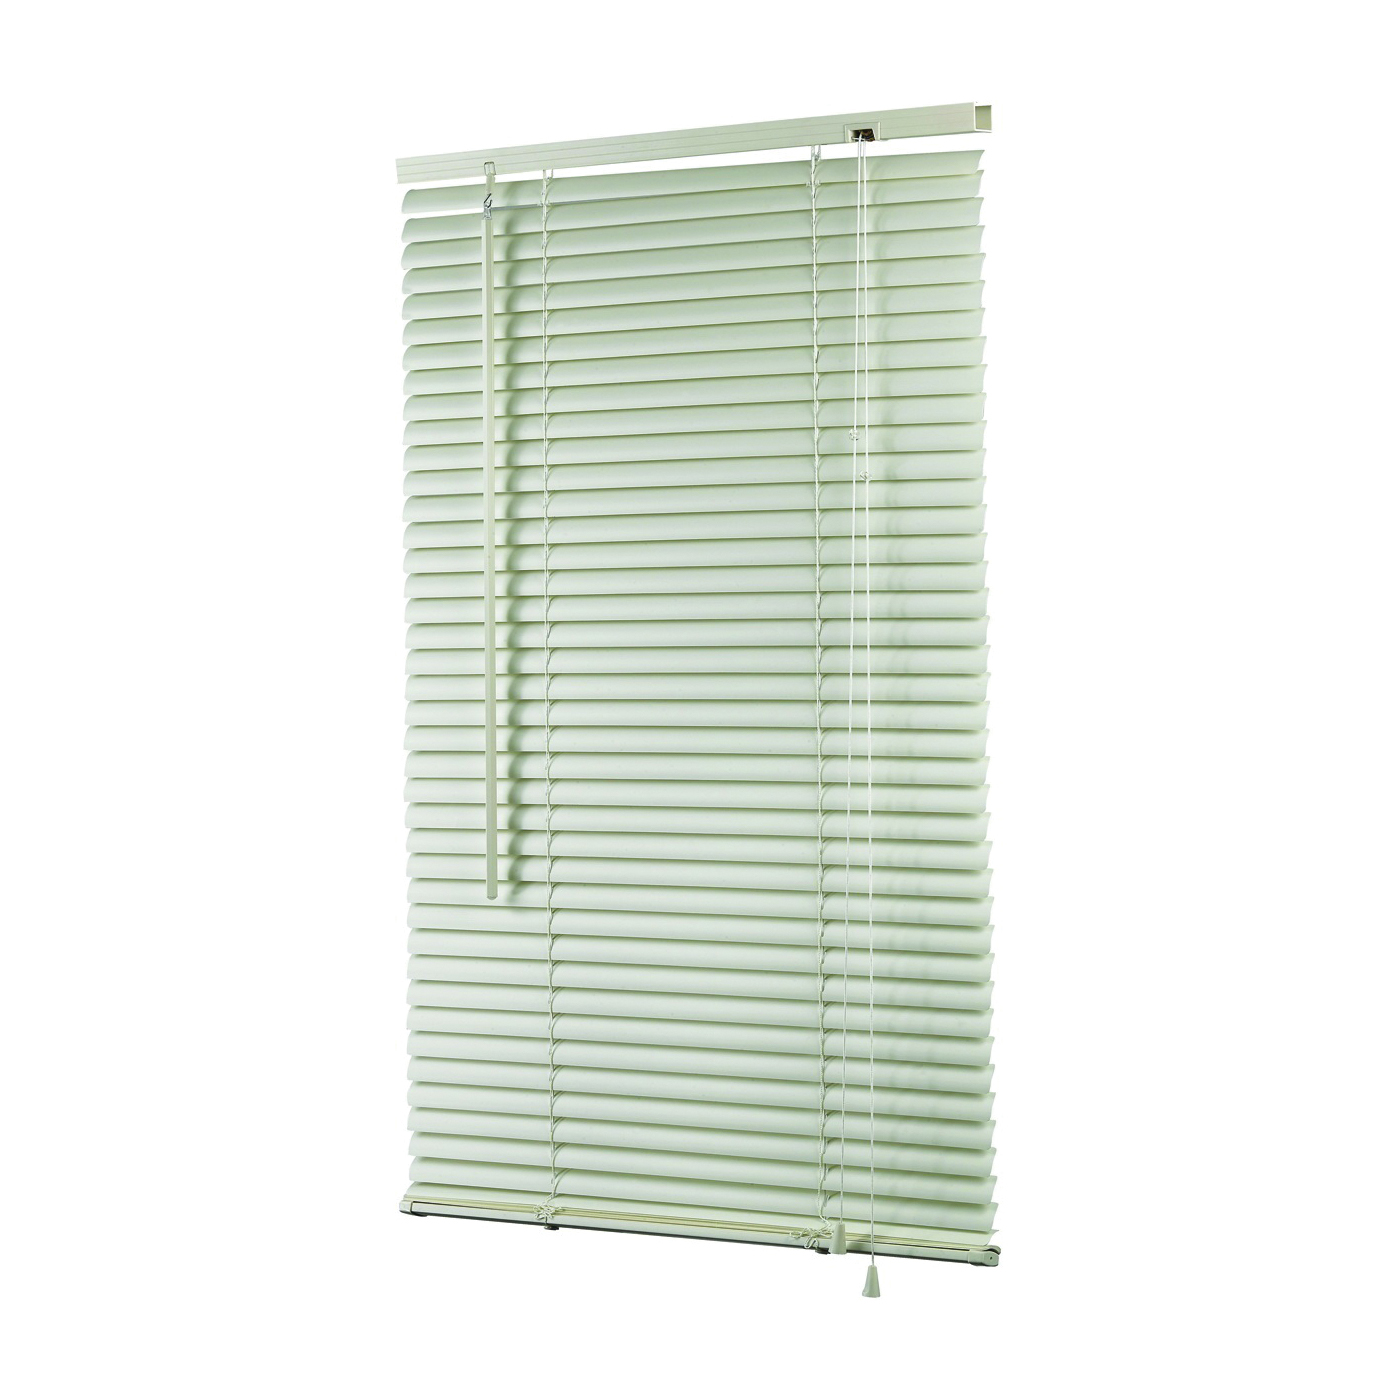 Picture of Simple Spaces MBV-36X64-3L Mini-Blinds, 64 in L, 36 in W, Vinyl, White